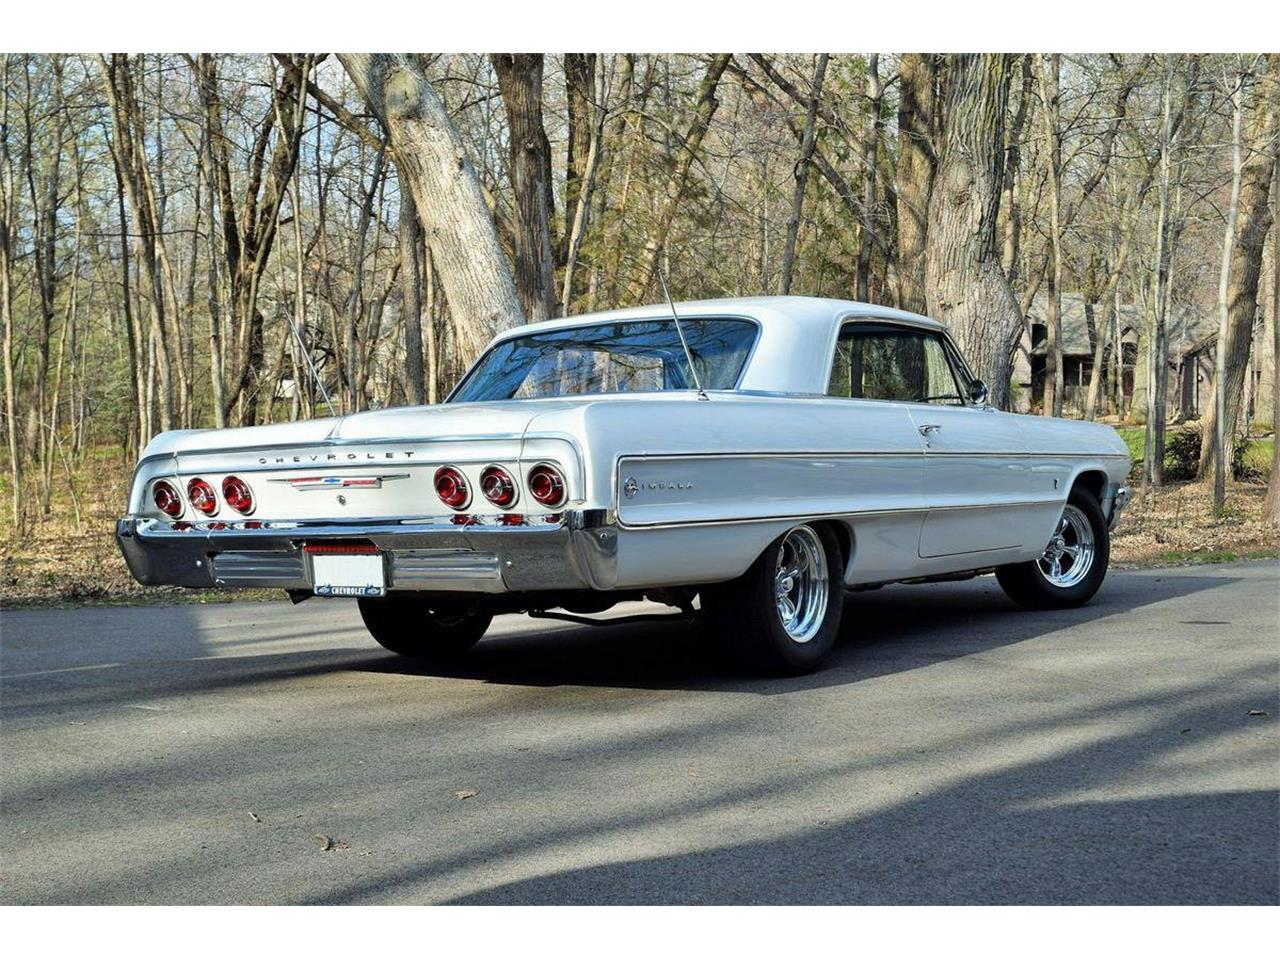 Large Picture of 1964 Chevrolet Impala Auction Vehicle Offered by Twin Cities Classic Car Auction - QBUA